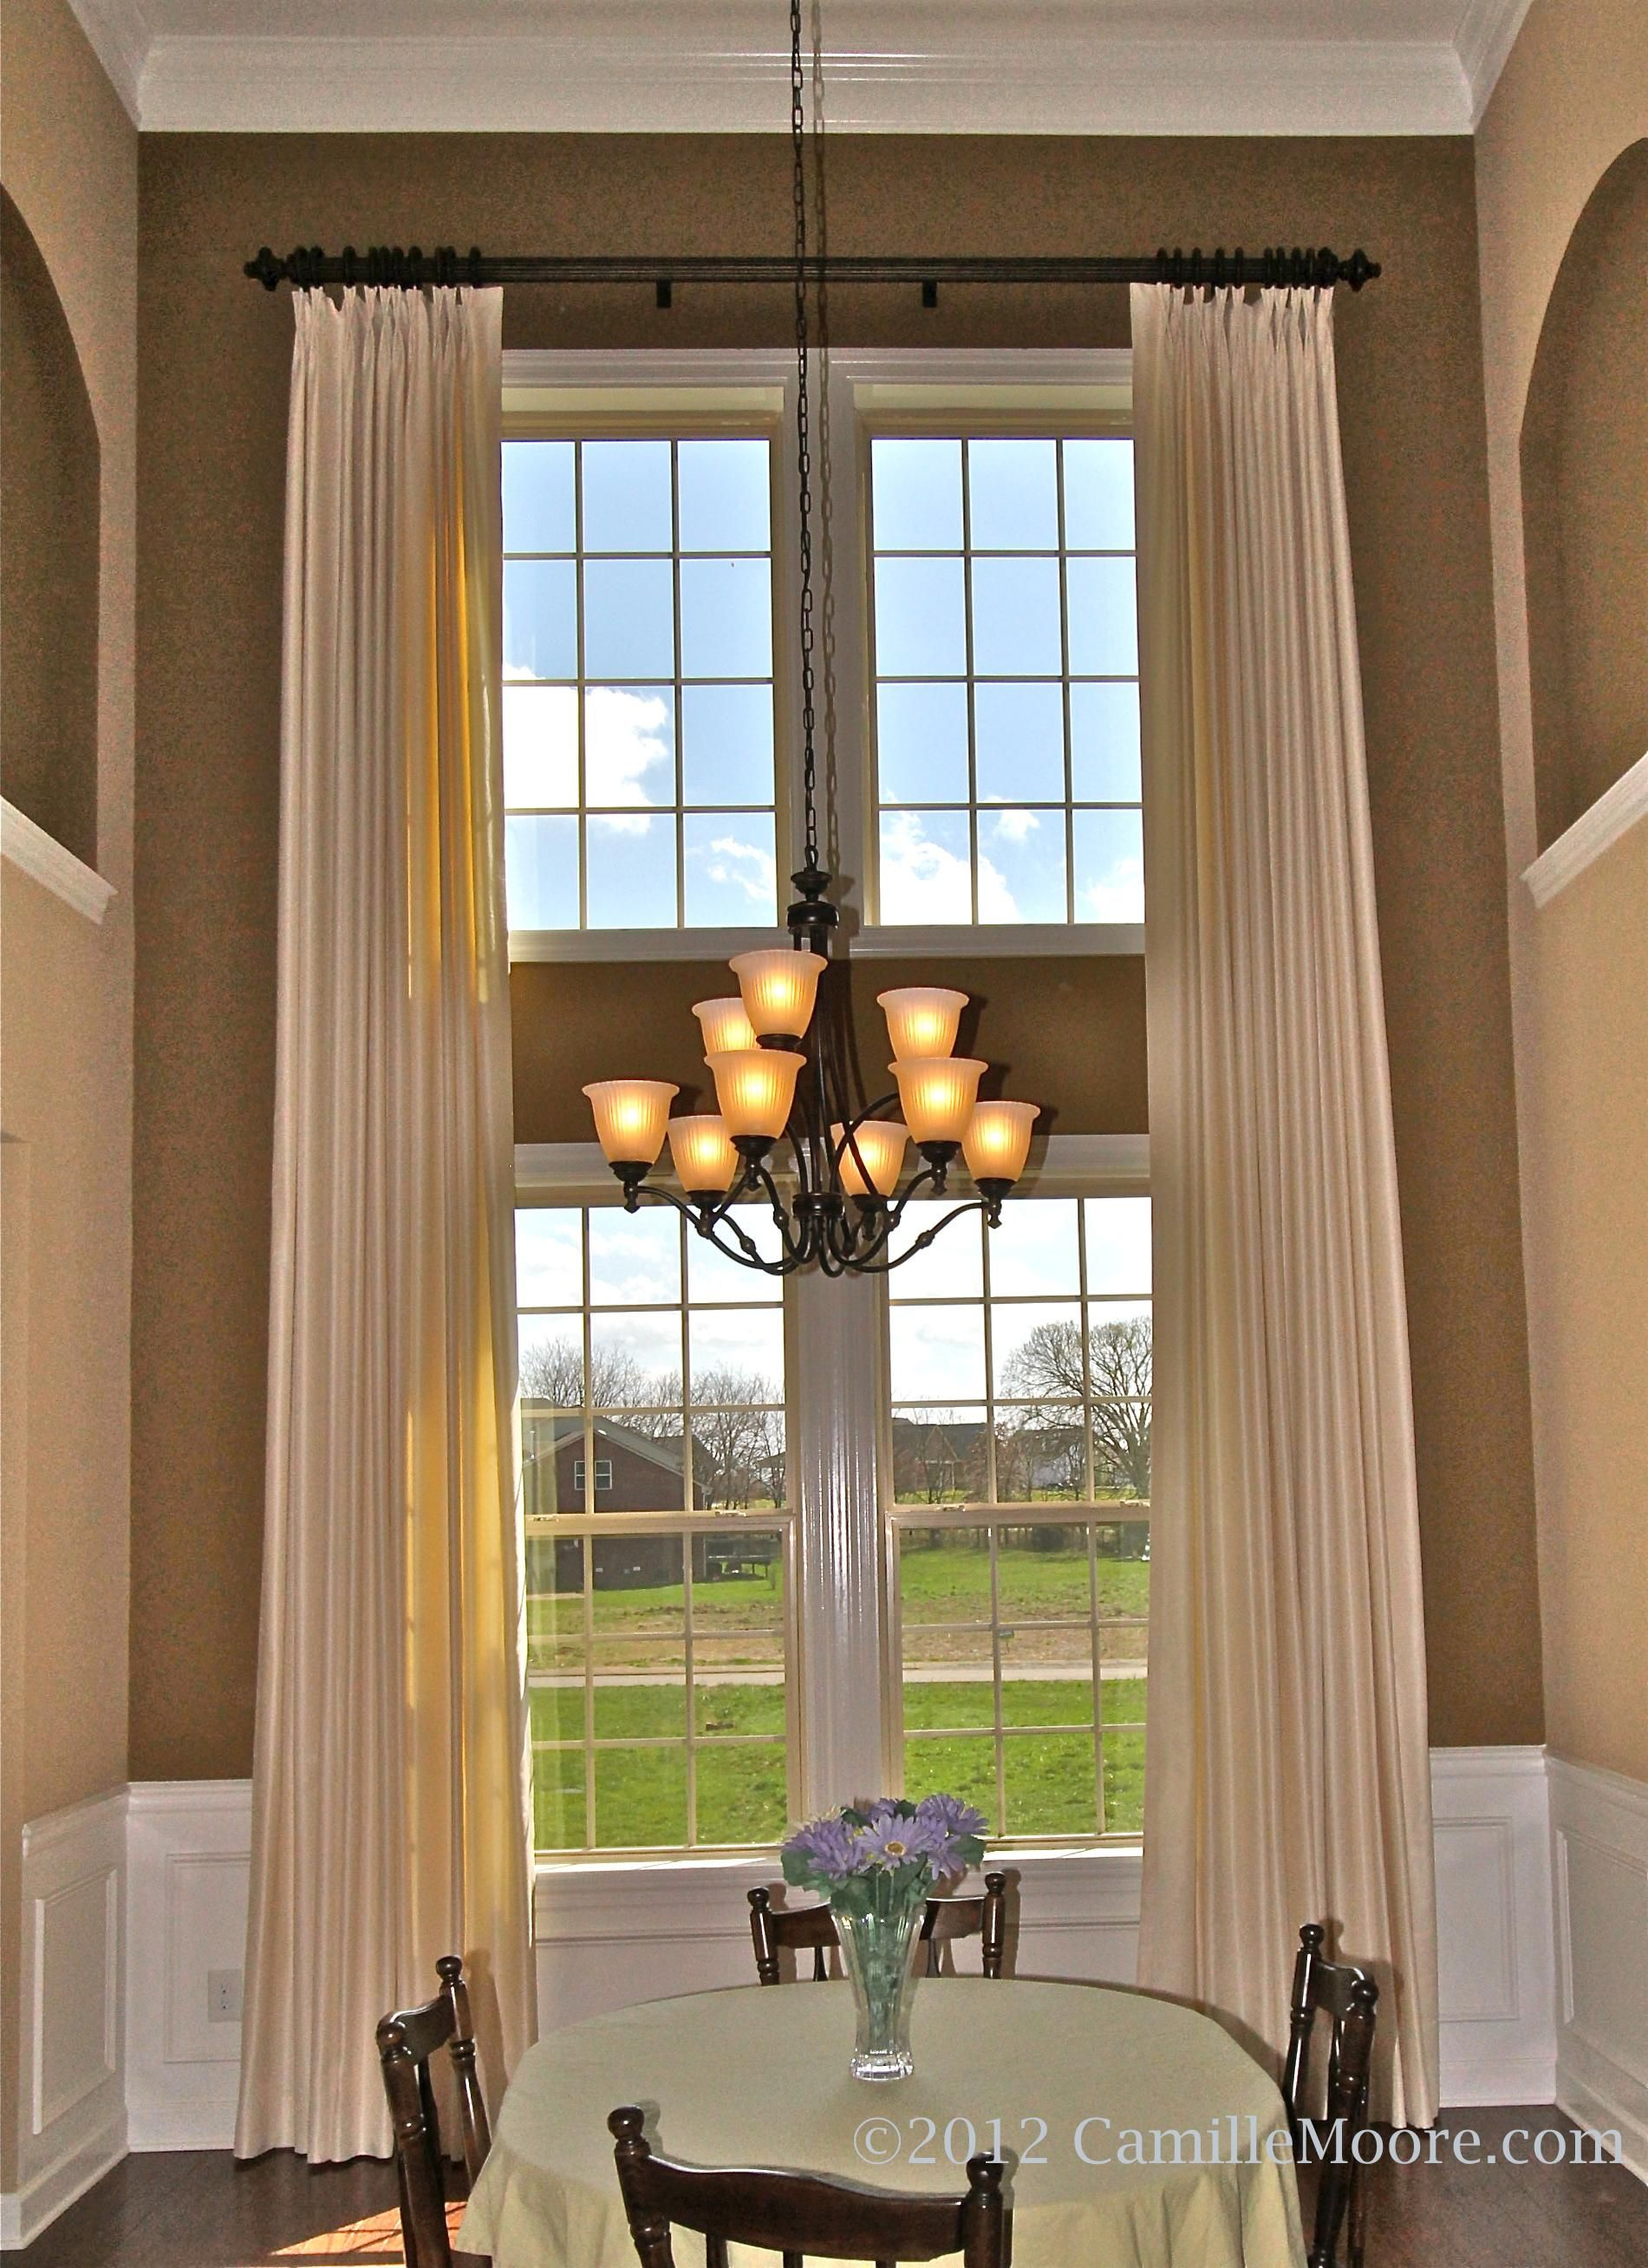 Window Coverings For Large Living Room Arrangement Ideas Draperies Two Story Windows Camille Moore Treatments